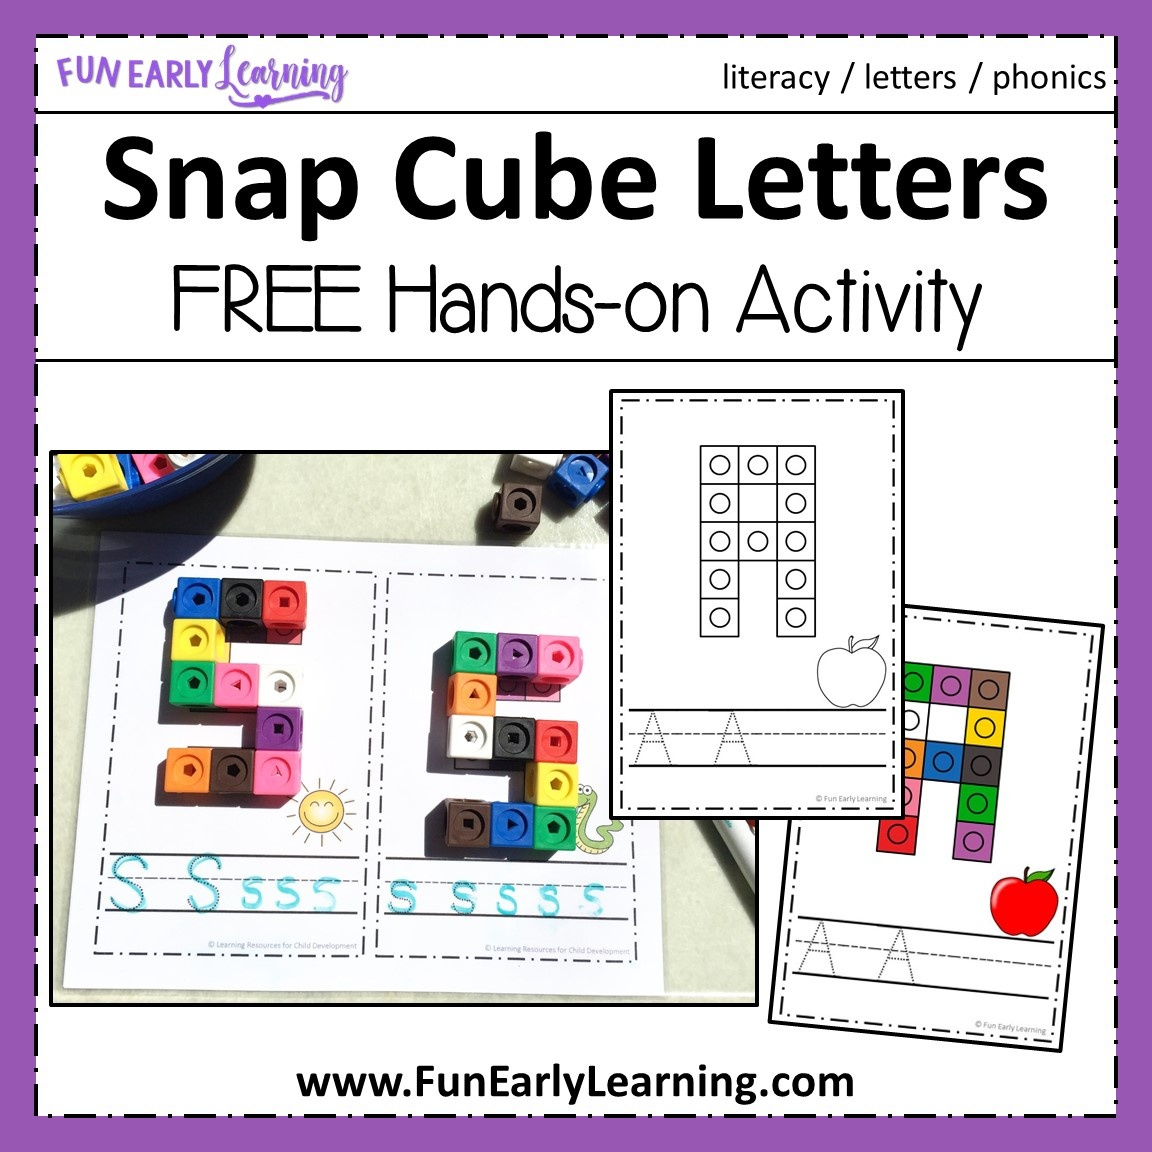 Snap Cube Letters - Hands-On Literacy And Math Activity - Free Printable Early Childhood Activities